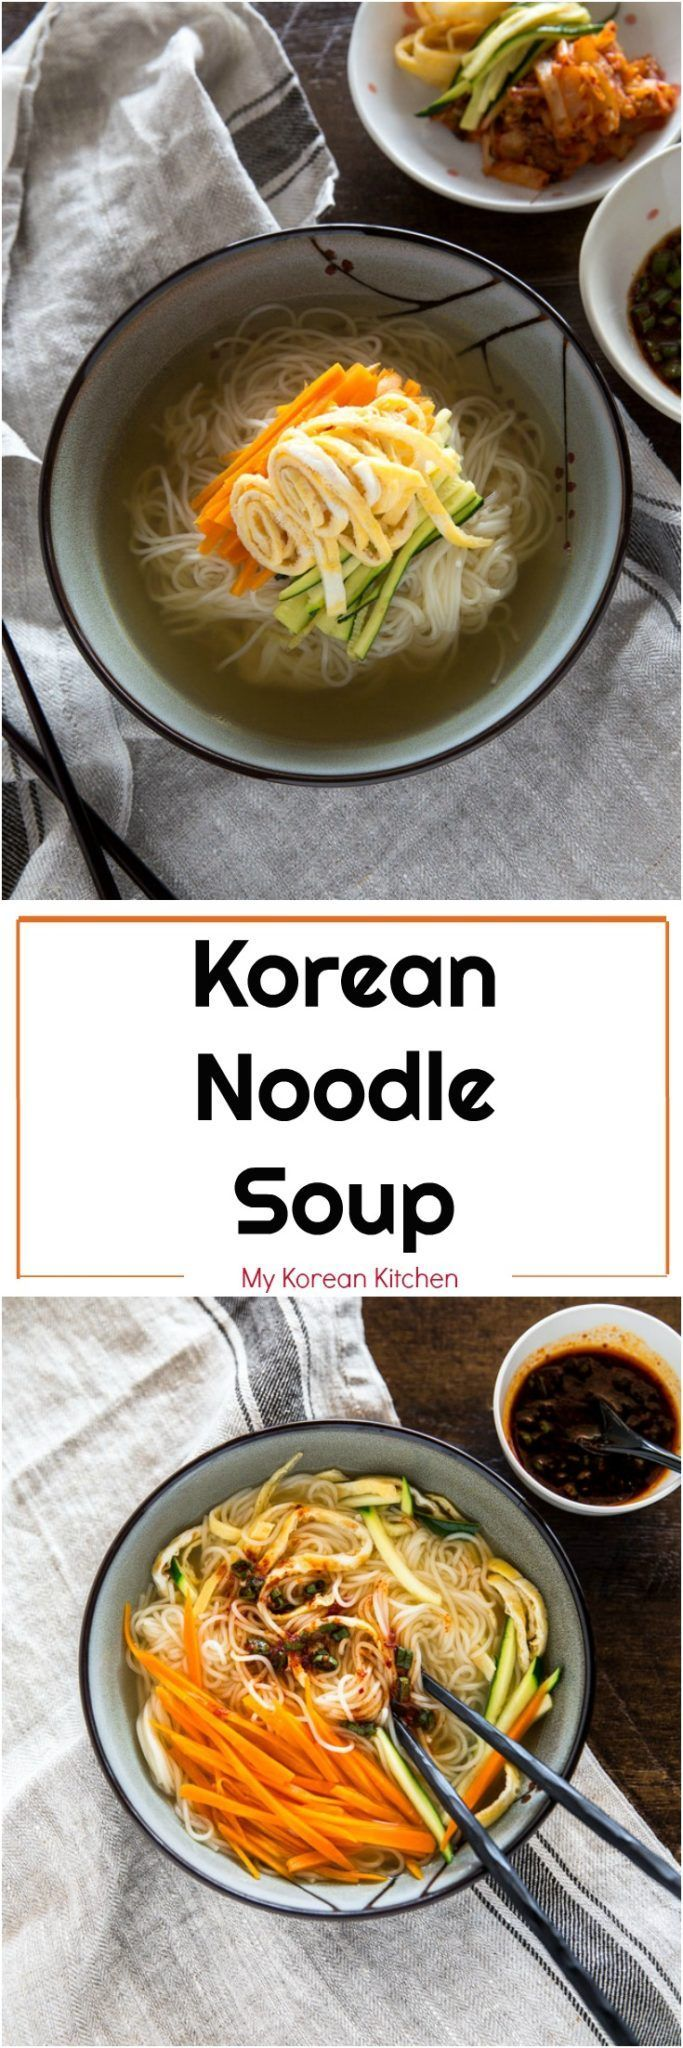 How to Make Korean Noodle Soup - Janchi Guksu | MyKoreanKitchen.com #koreanfood #noodles #soup #noodlesoup #healthy #comfortfood